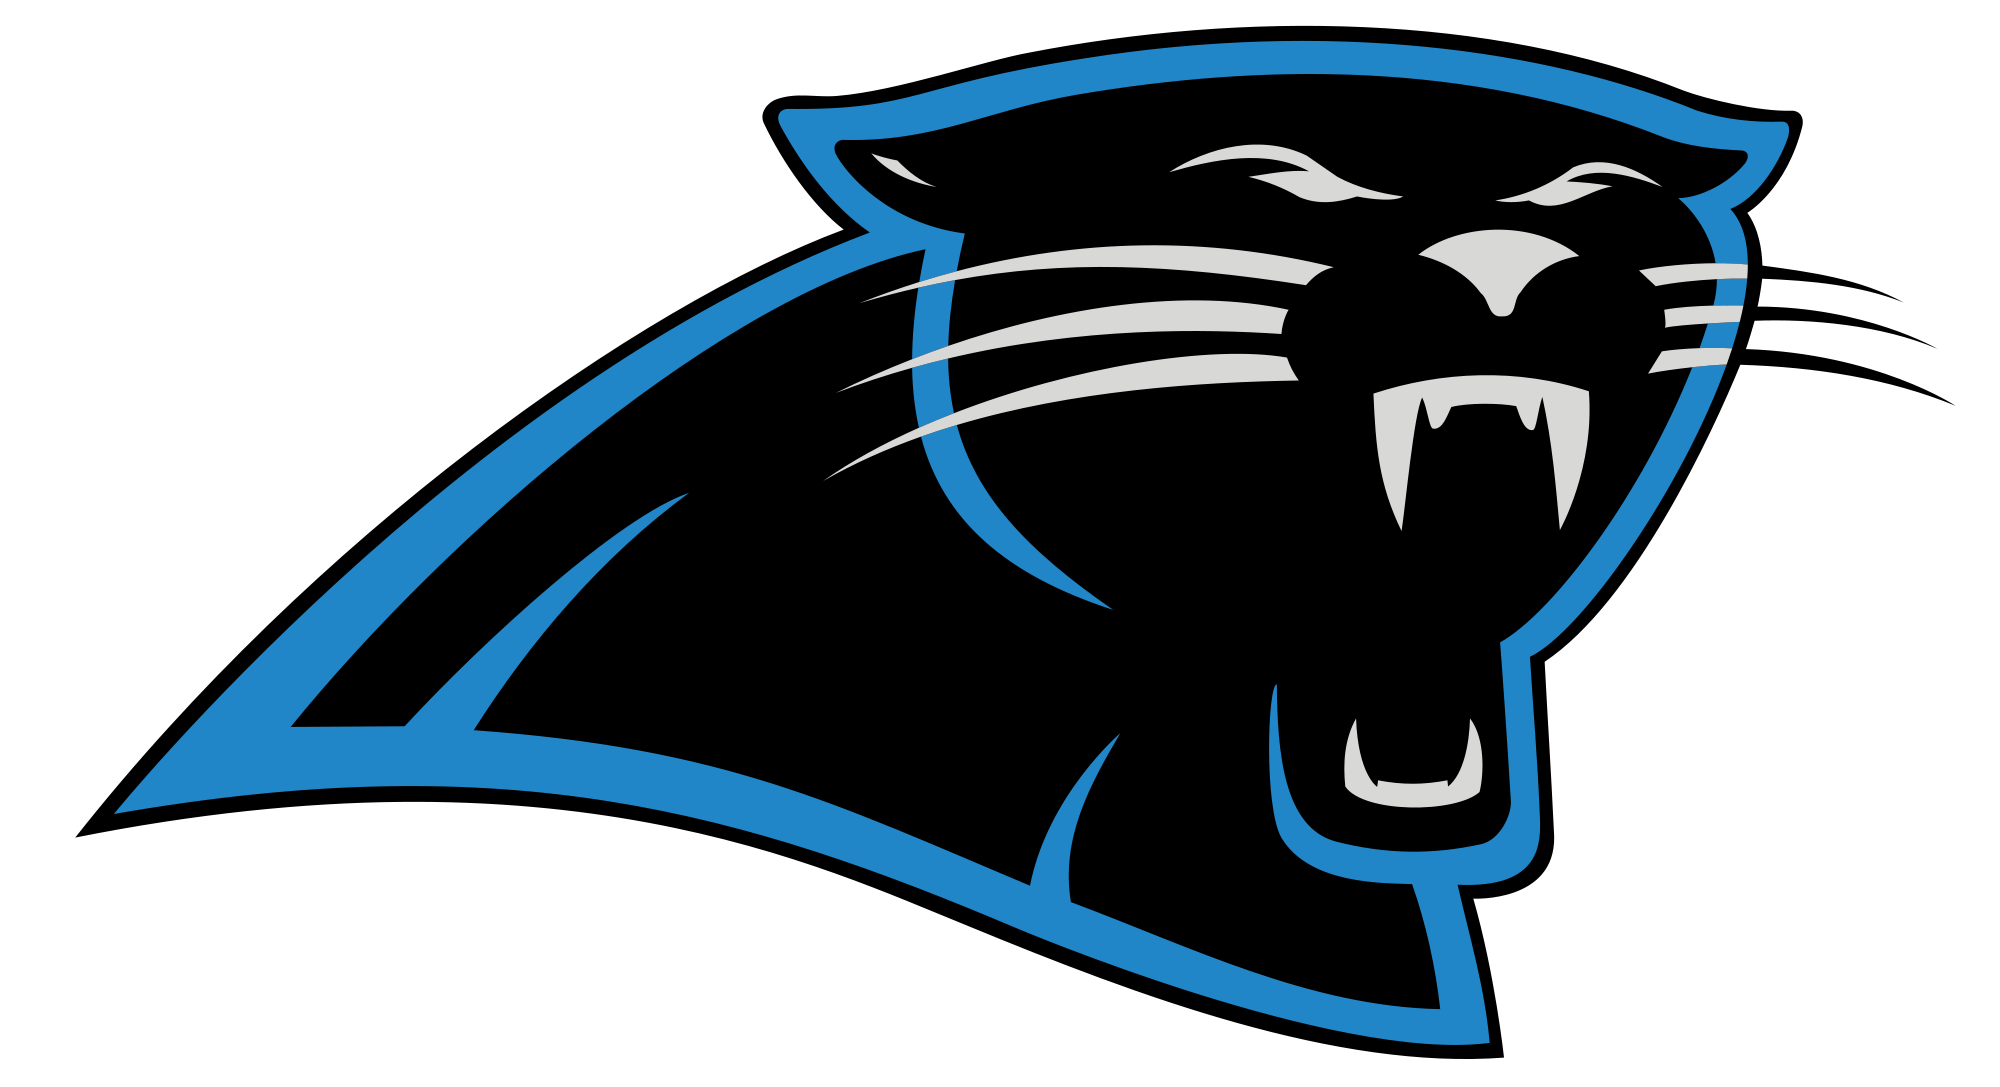 Carolina panthers images for backgrounds desktop free ololoshenka carolina panthers images for backgrounds desktop free voltagebd Choice Image